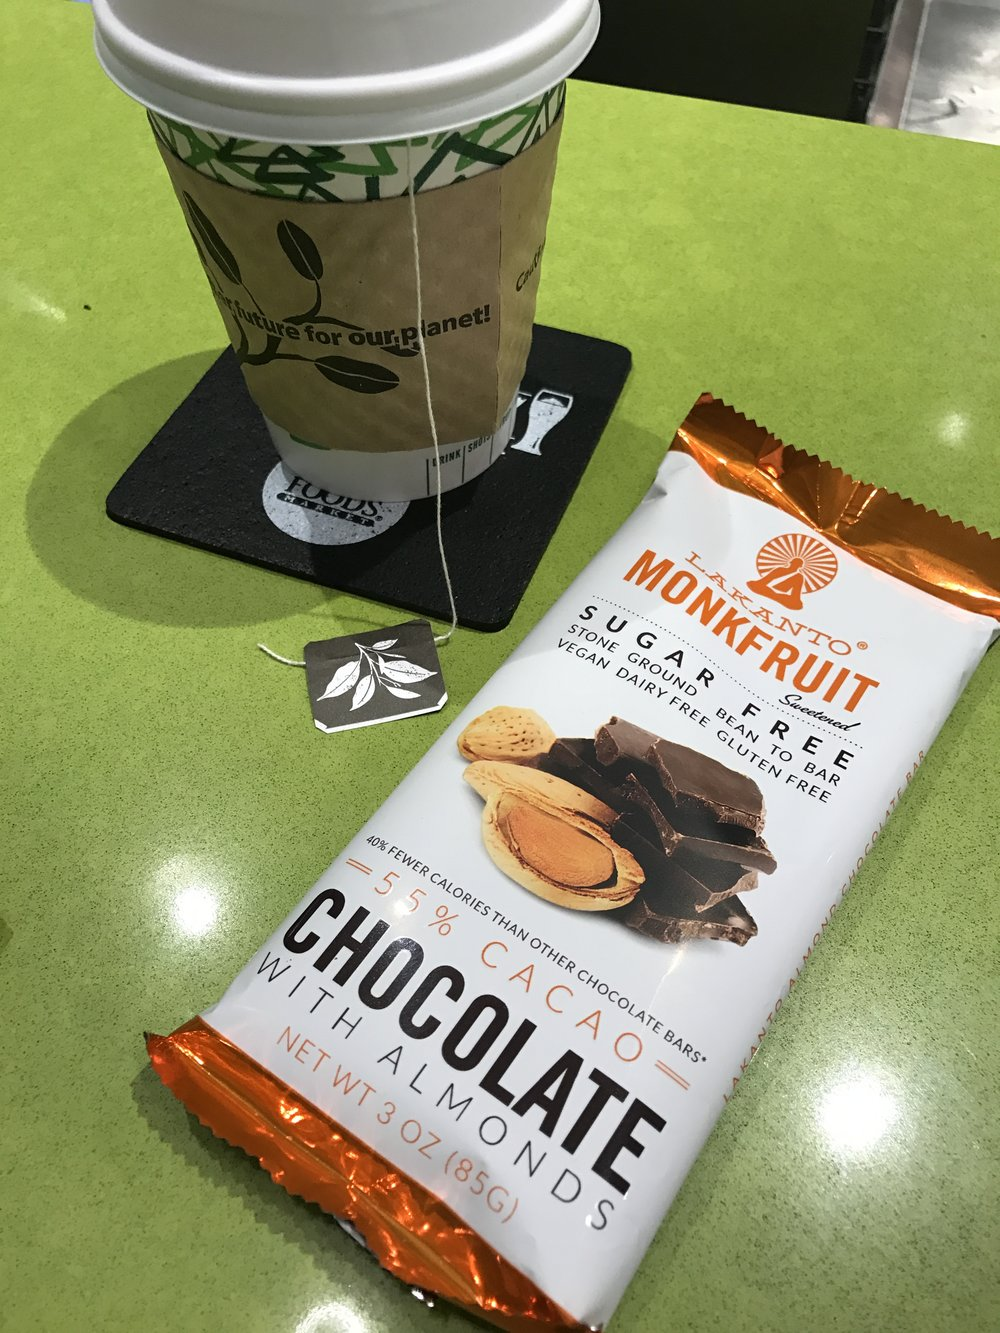 I drank some Jasmine Green Tea, which is rich in flavonoids,  and a had some Sugar Free  Chocolate with Almonds. This chocolate is sweetened with monkfruit, a natural food based sweetener. It's delicious by the way!